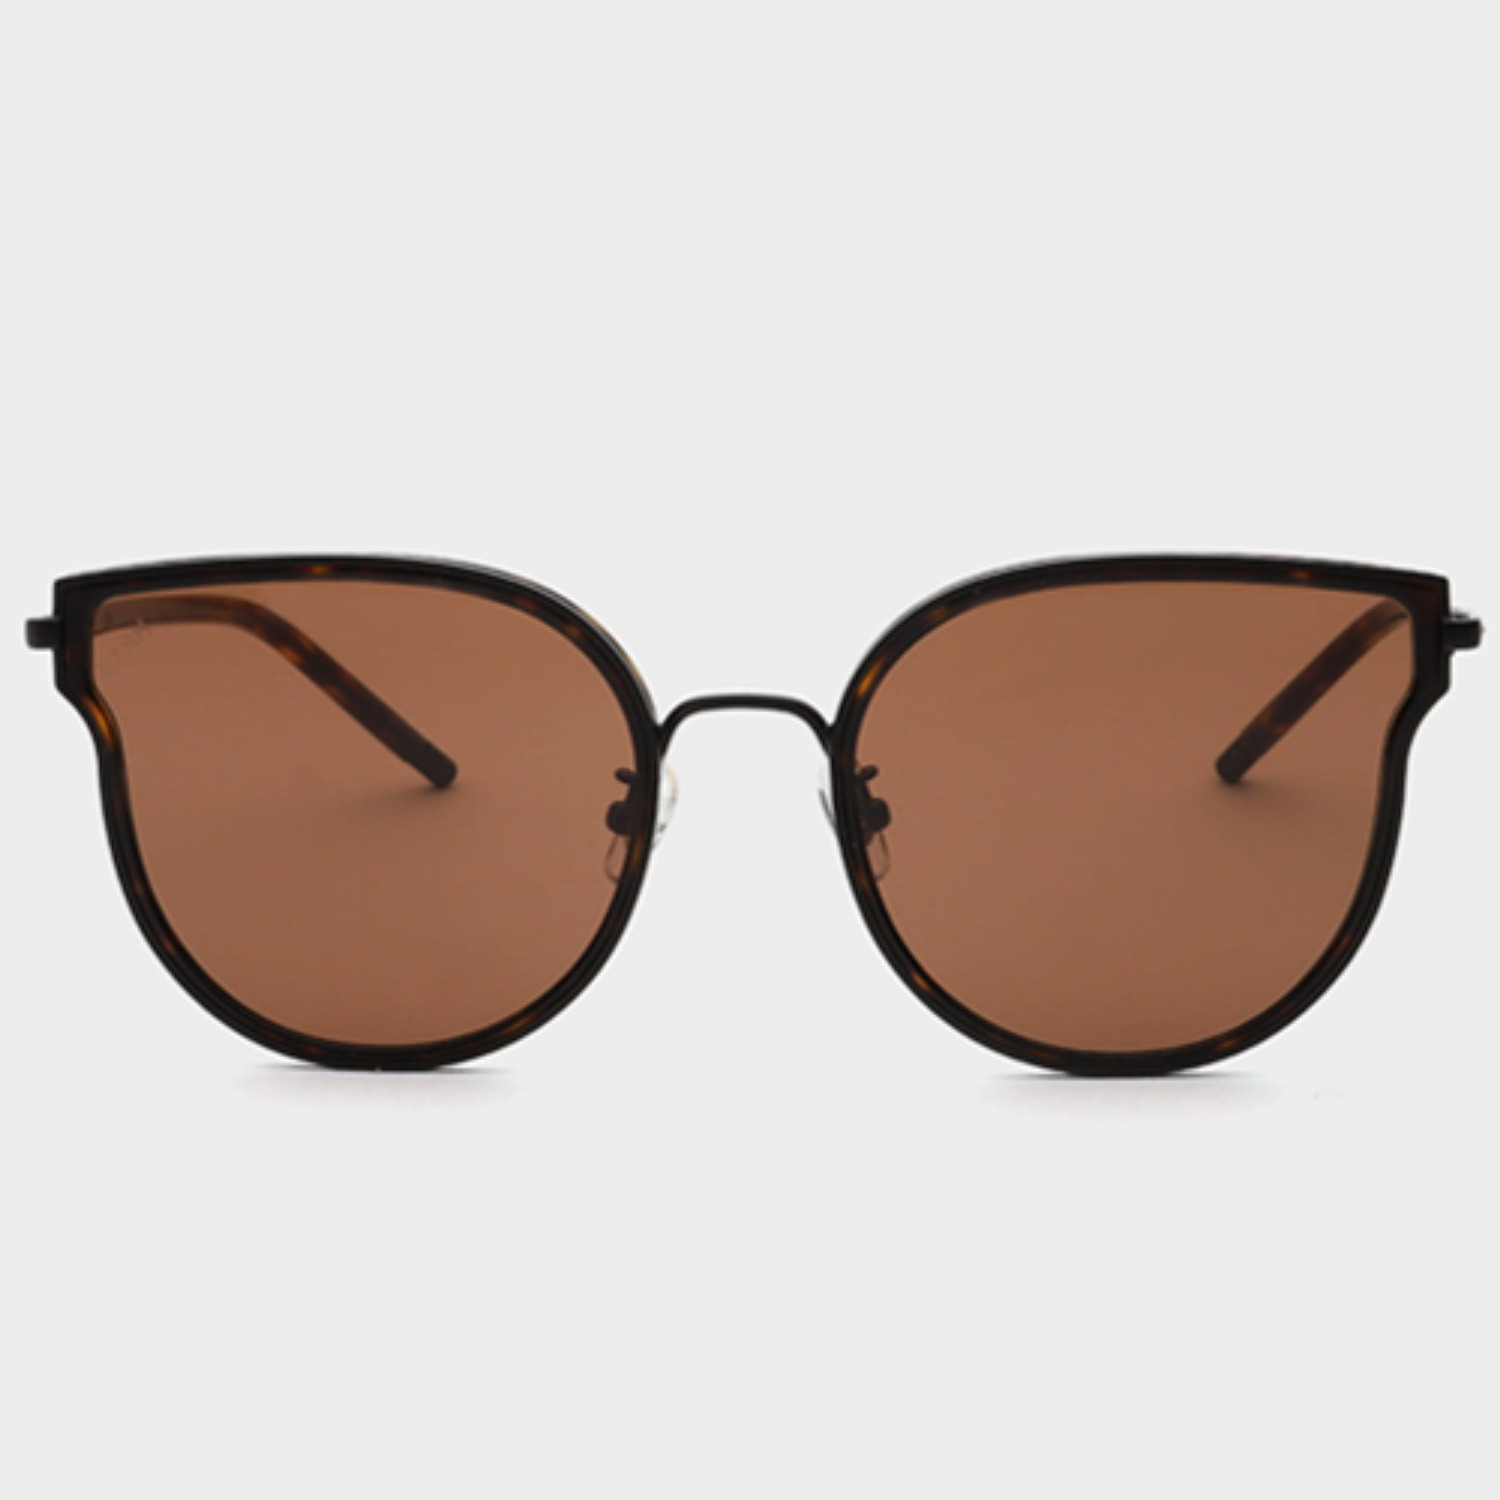 래쉬 ACID BKH01 (Brown Lens)